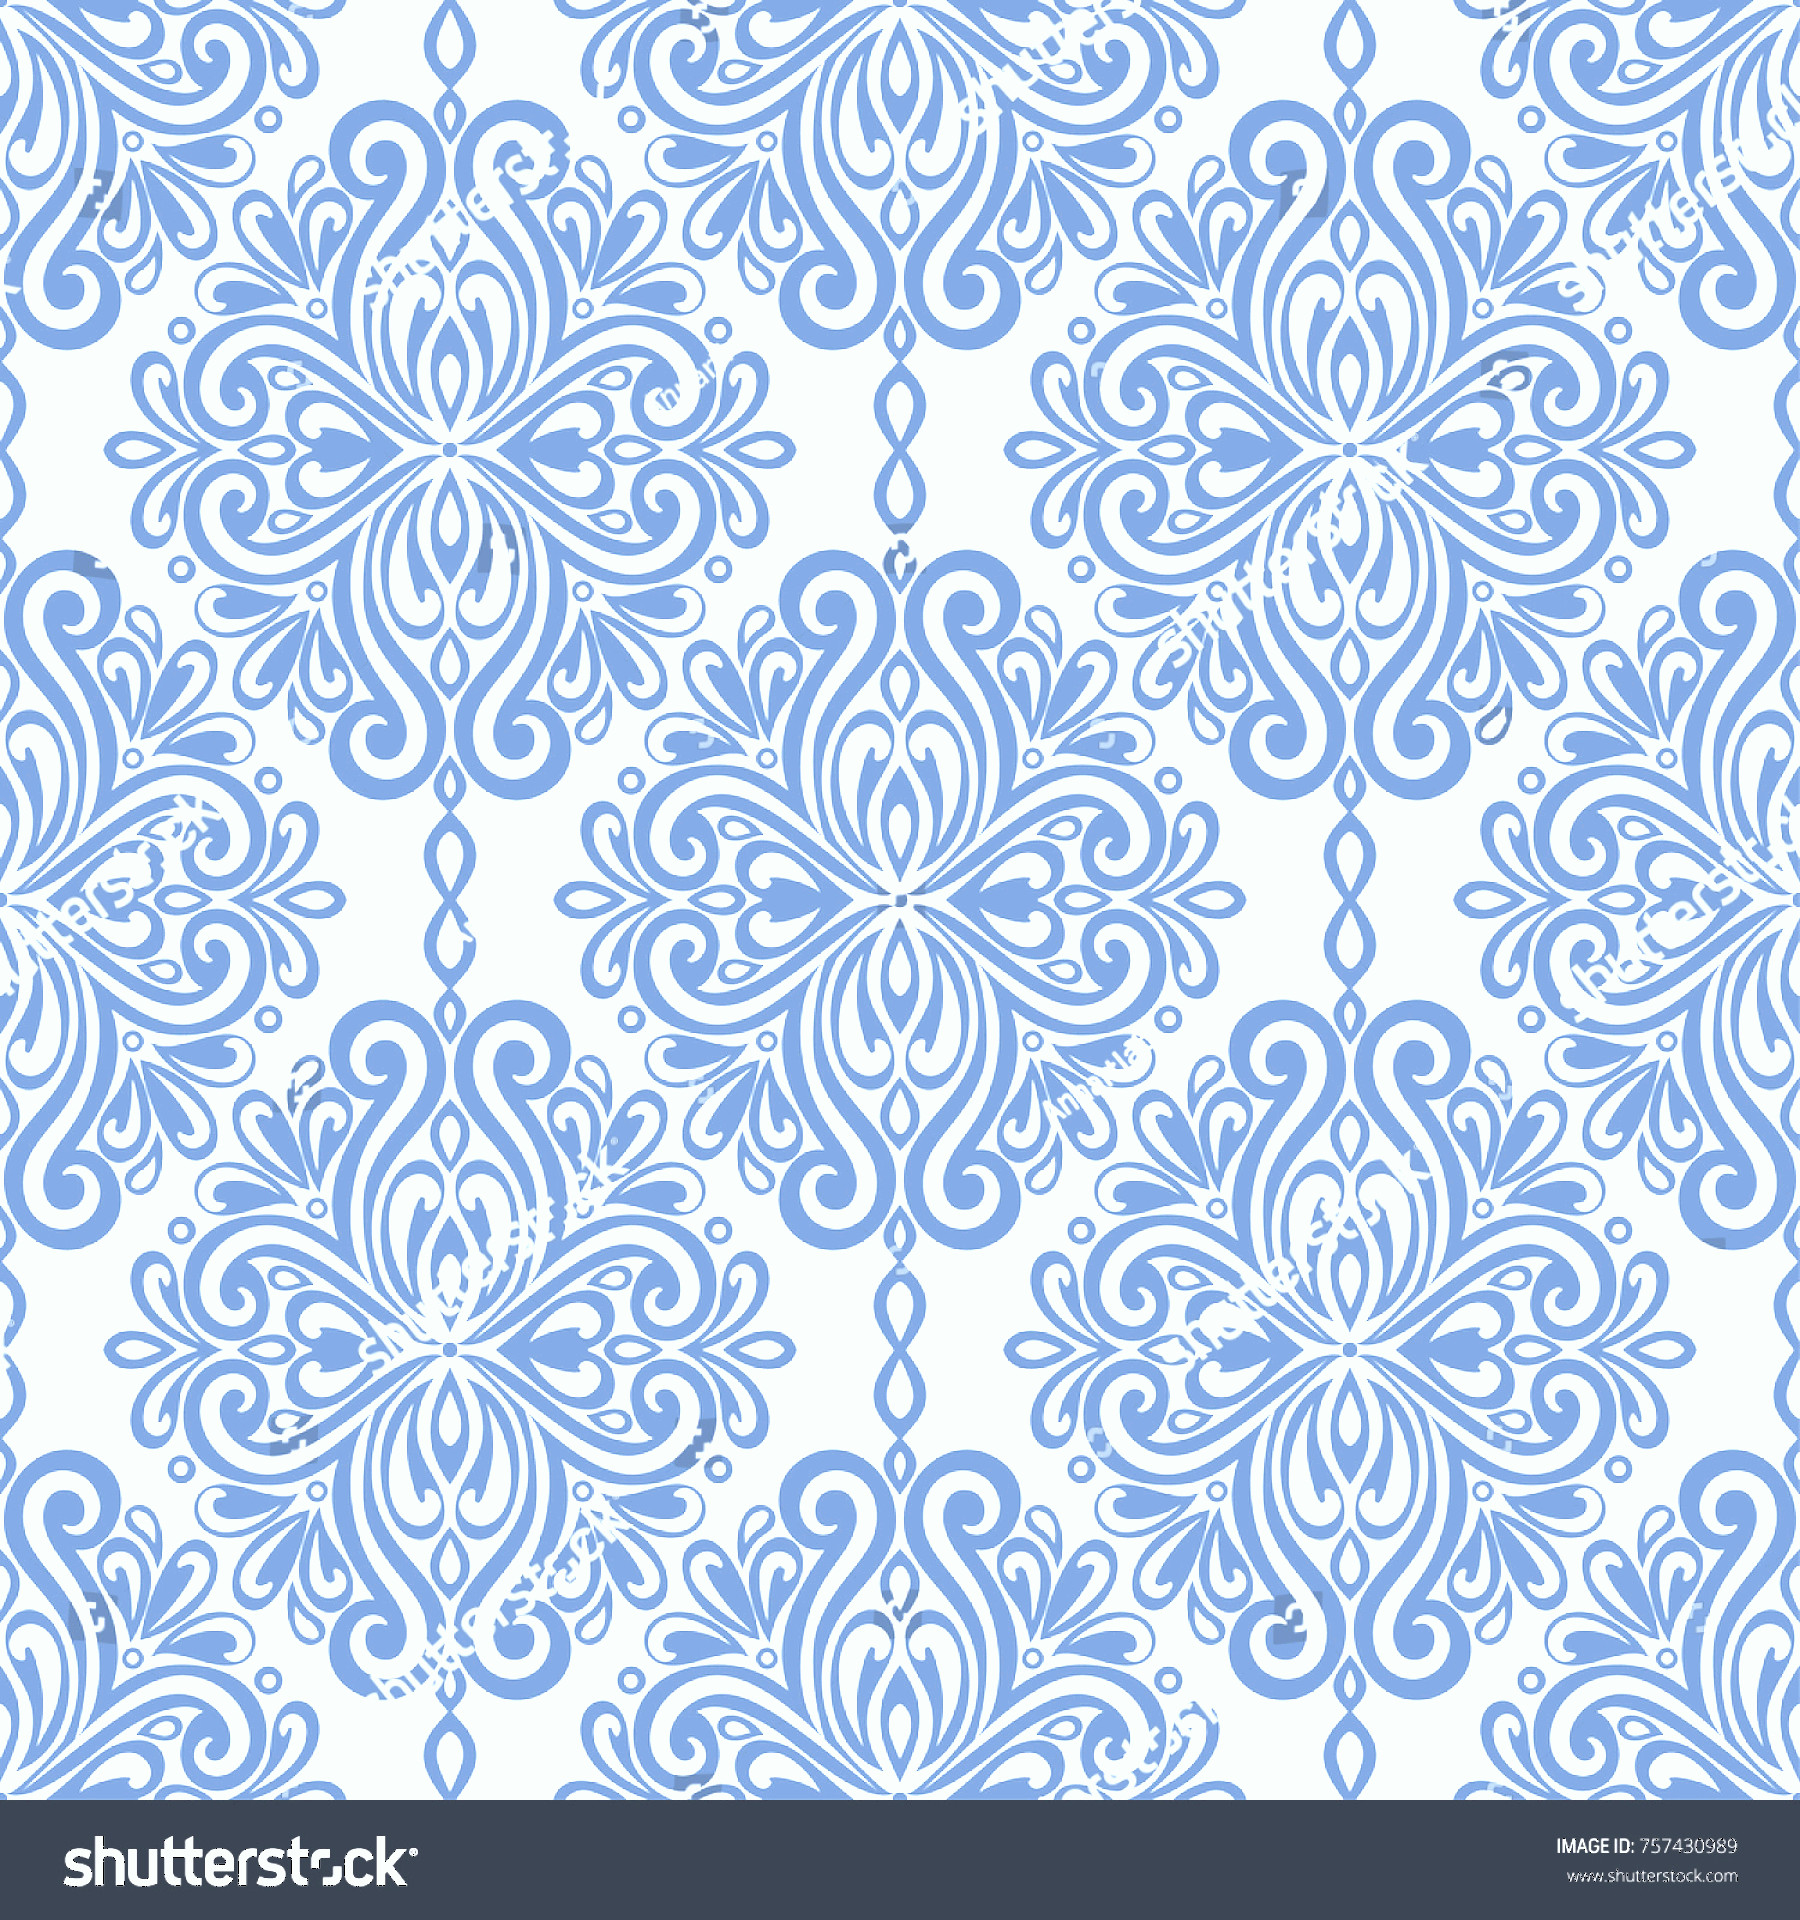 Blue And White Damask Vectors: Blue White Damask Vector Seamless Pattern